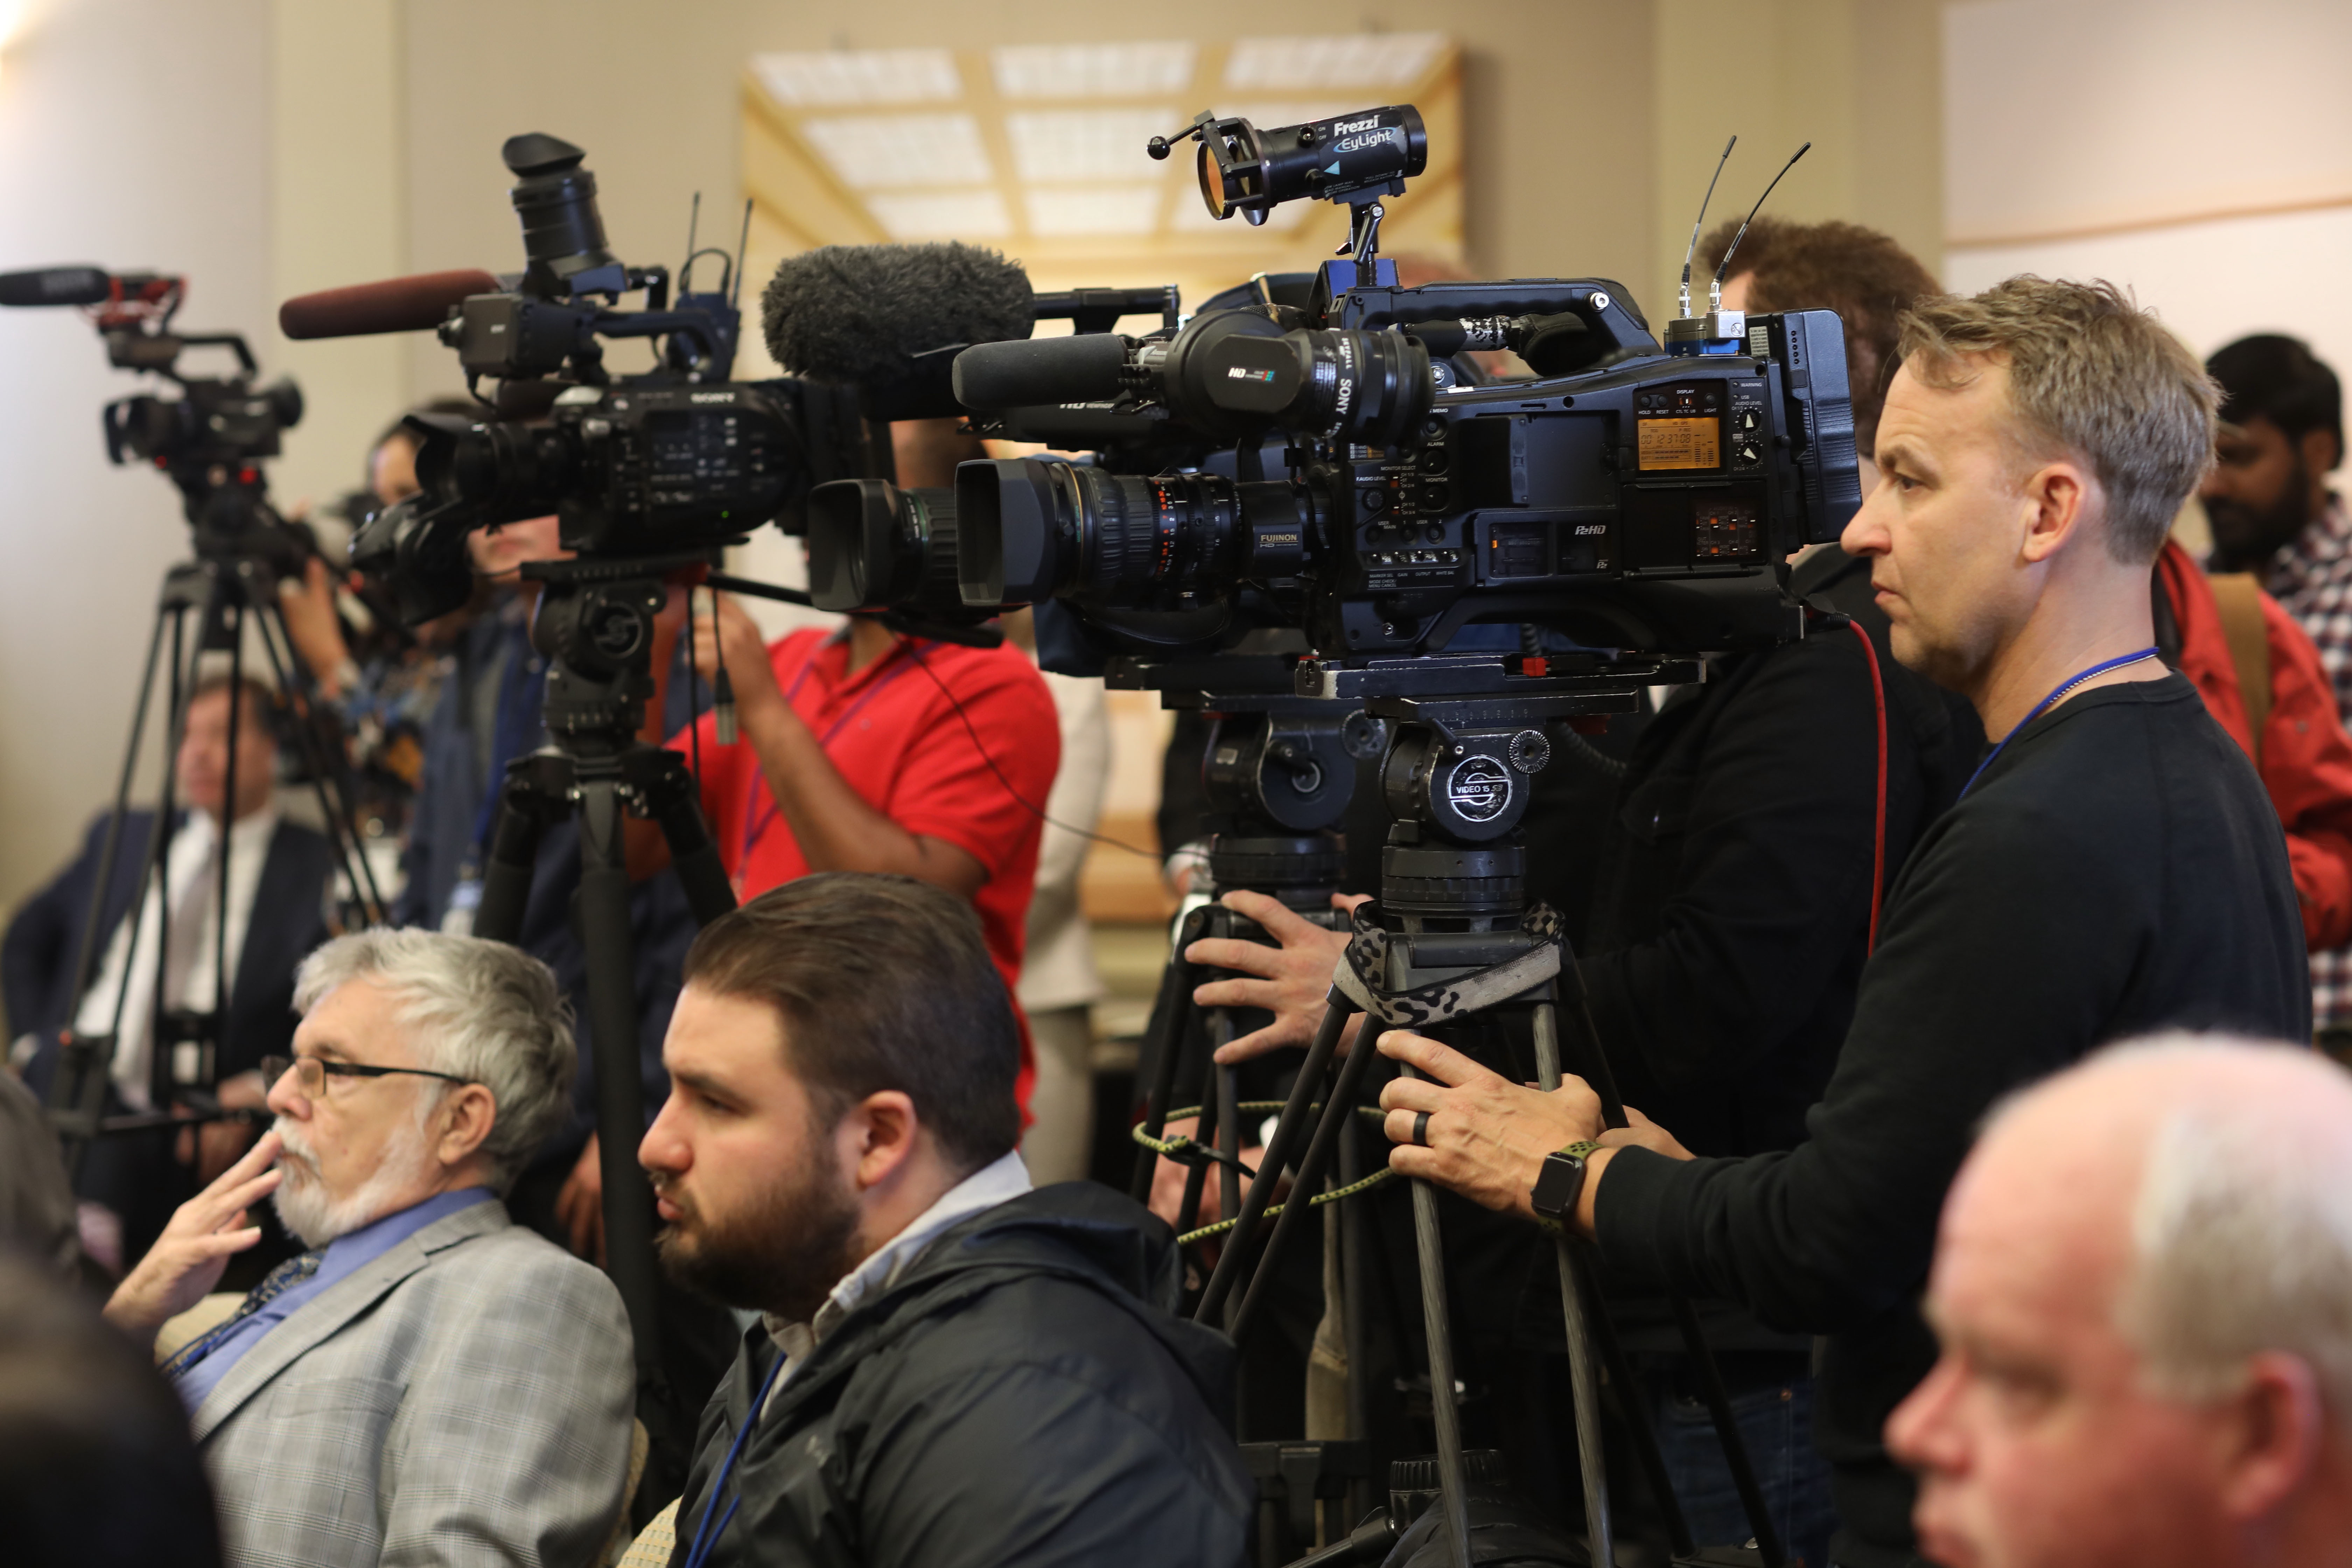 Members of the news media attend a briefing, hosted by The Church of Jesus Christ of Latter-day Saints, about the Oakland California Temple, May 6, 2019. The temple was recently renovated.